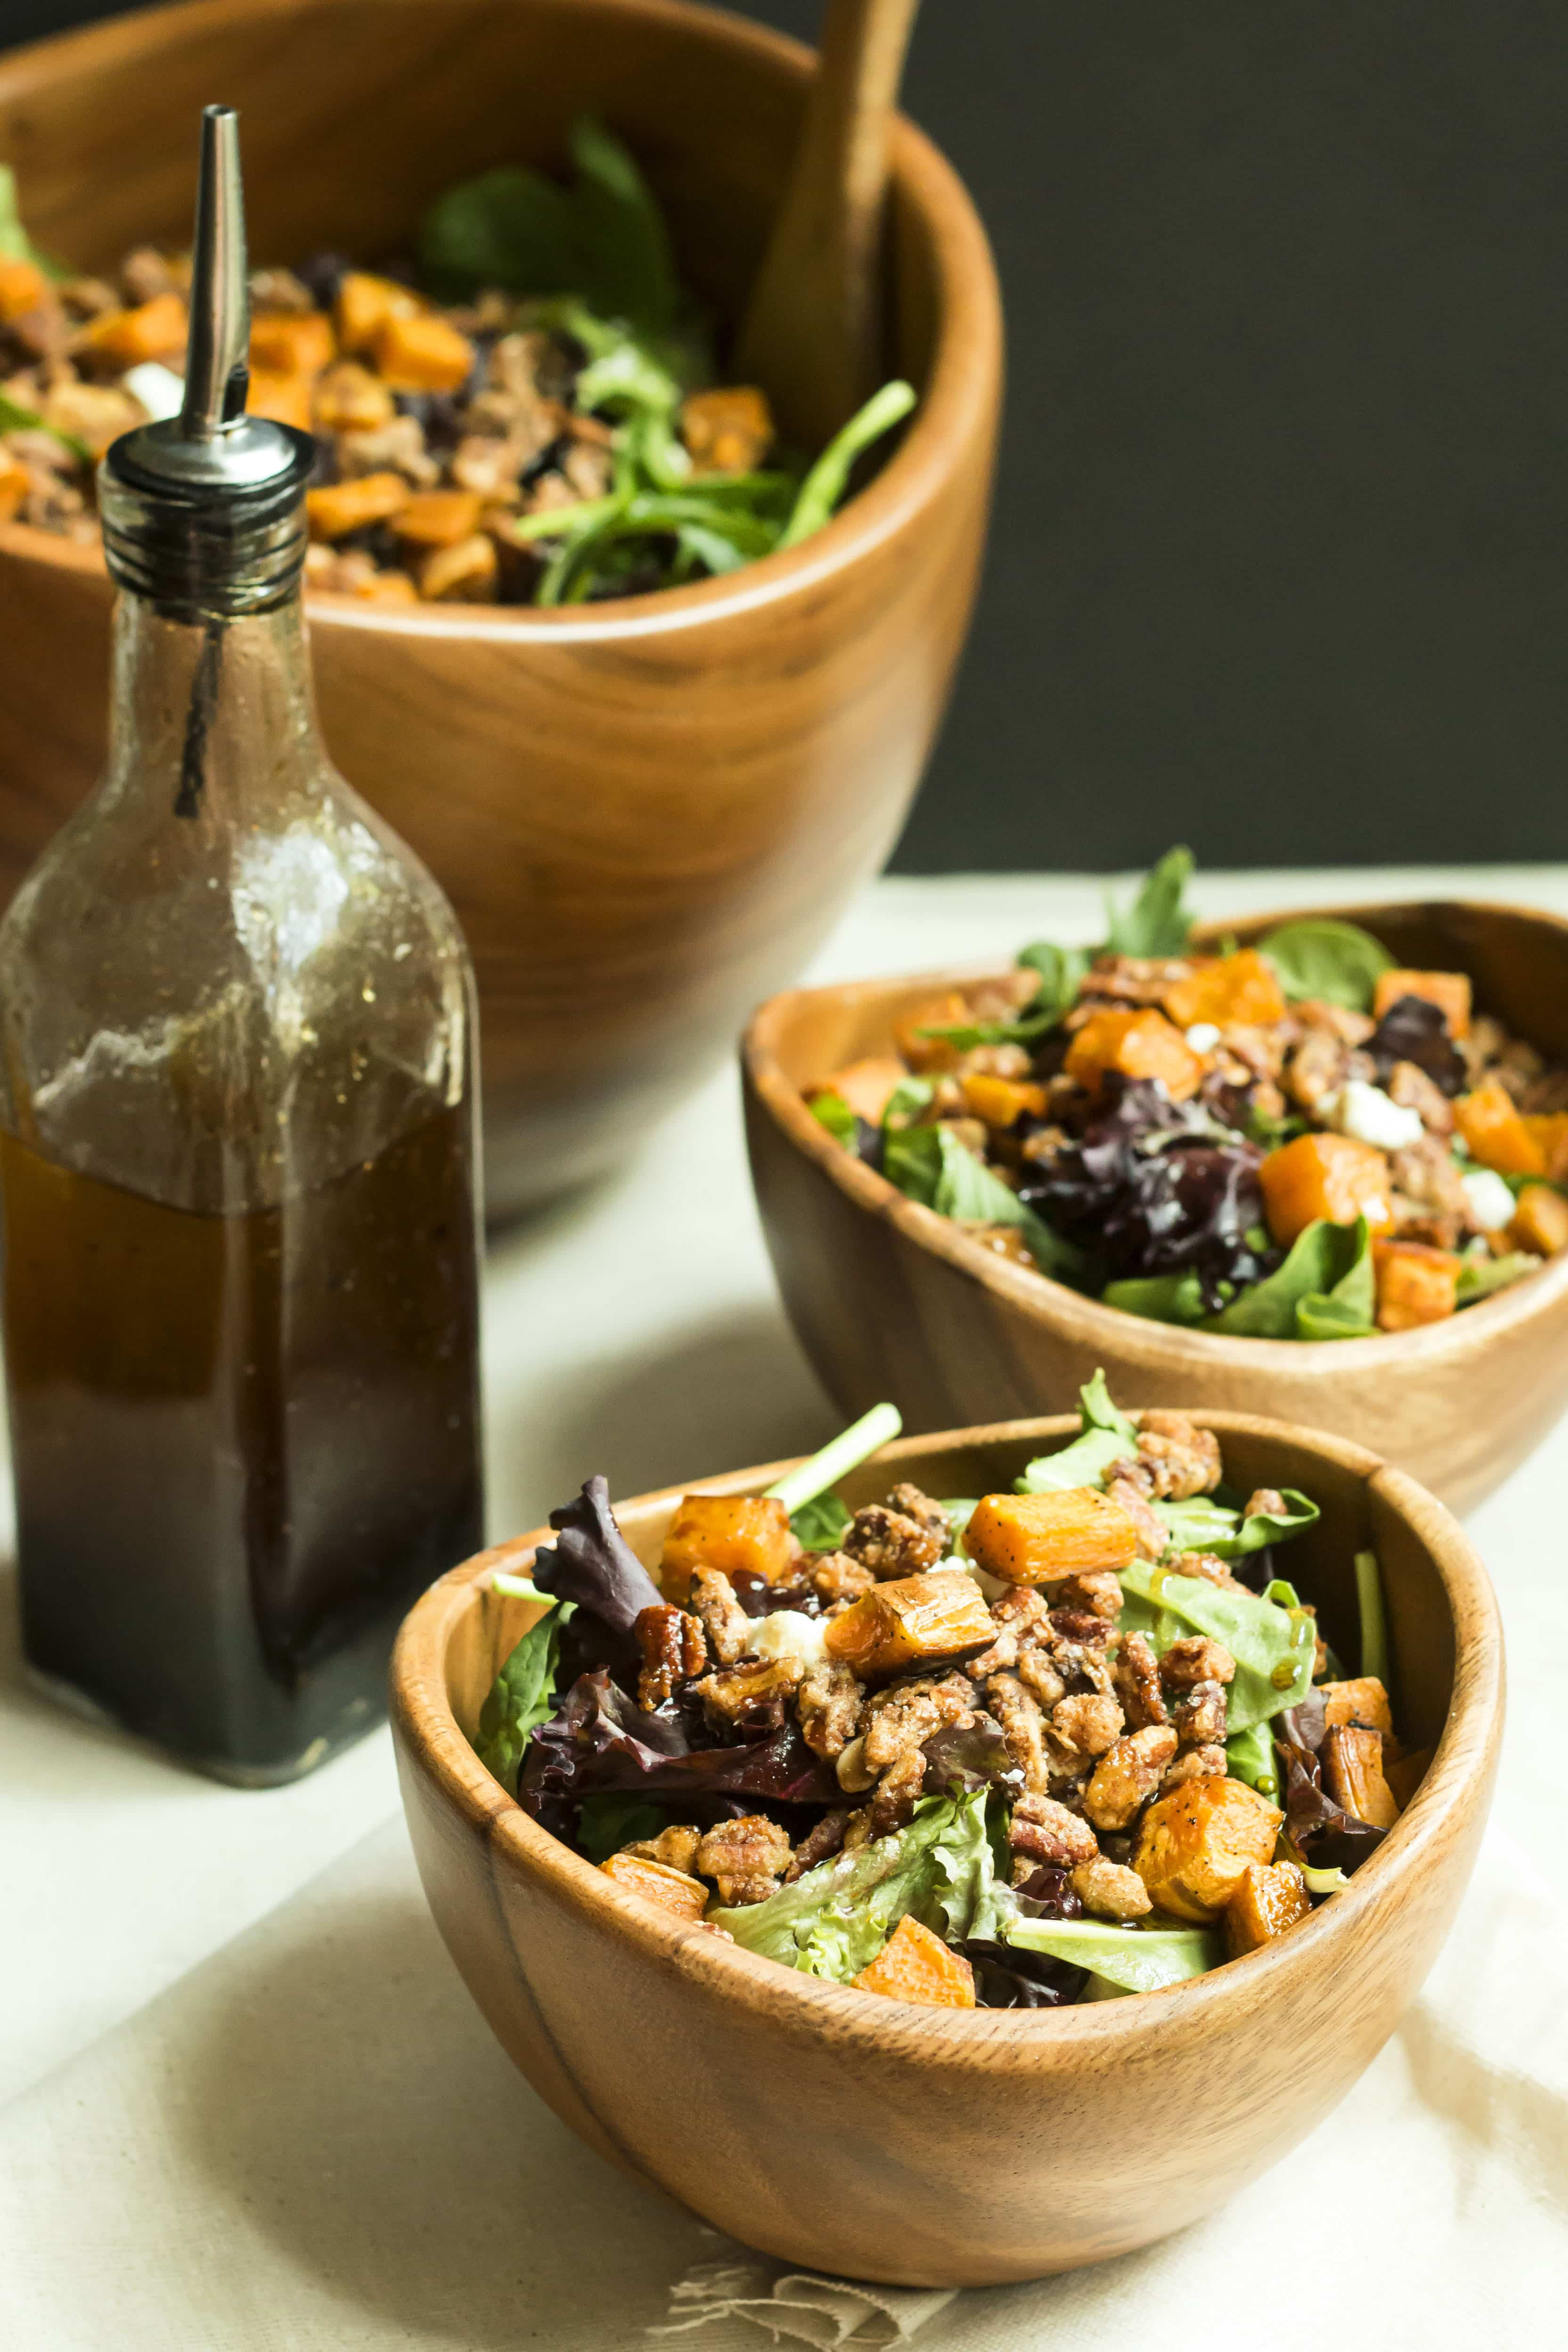 Warm Candied Pecan Salad | Gluten Free with L.B.